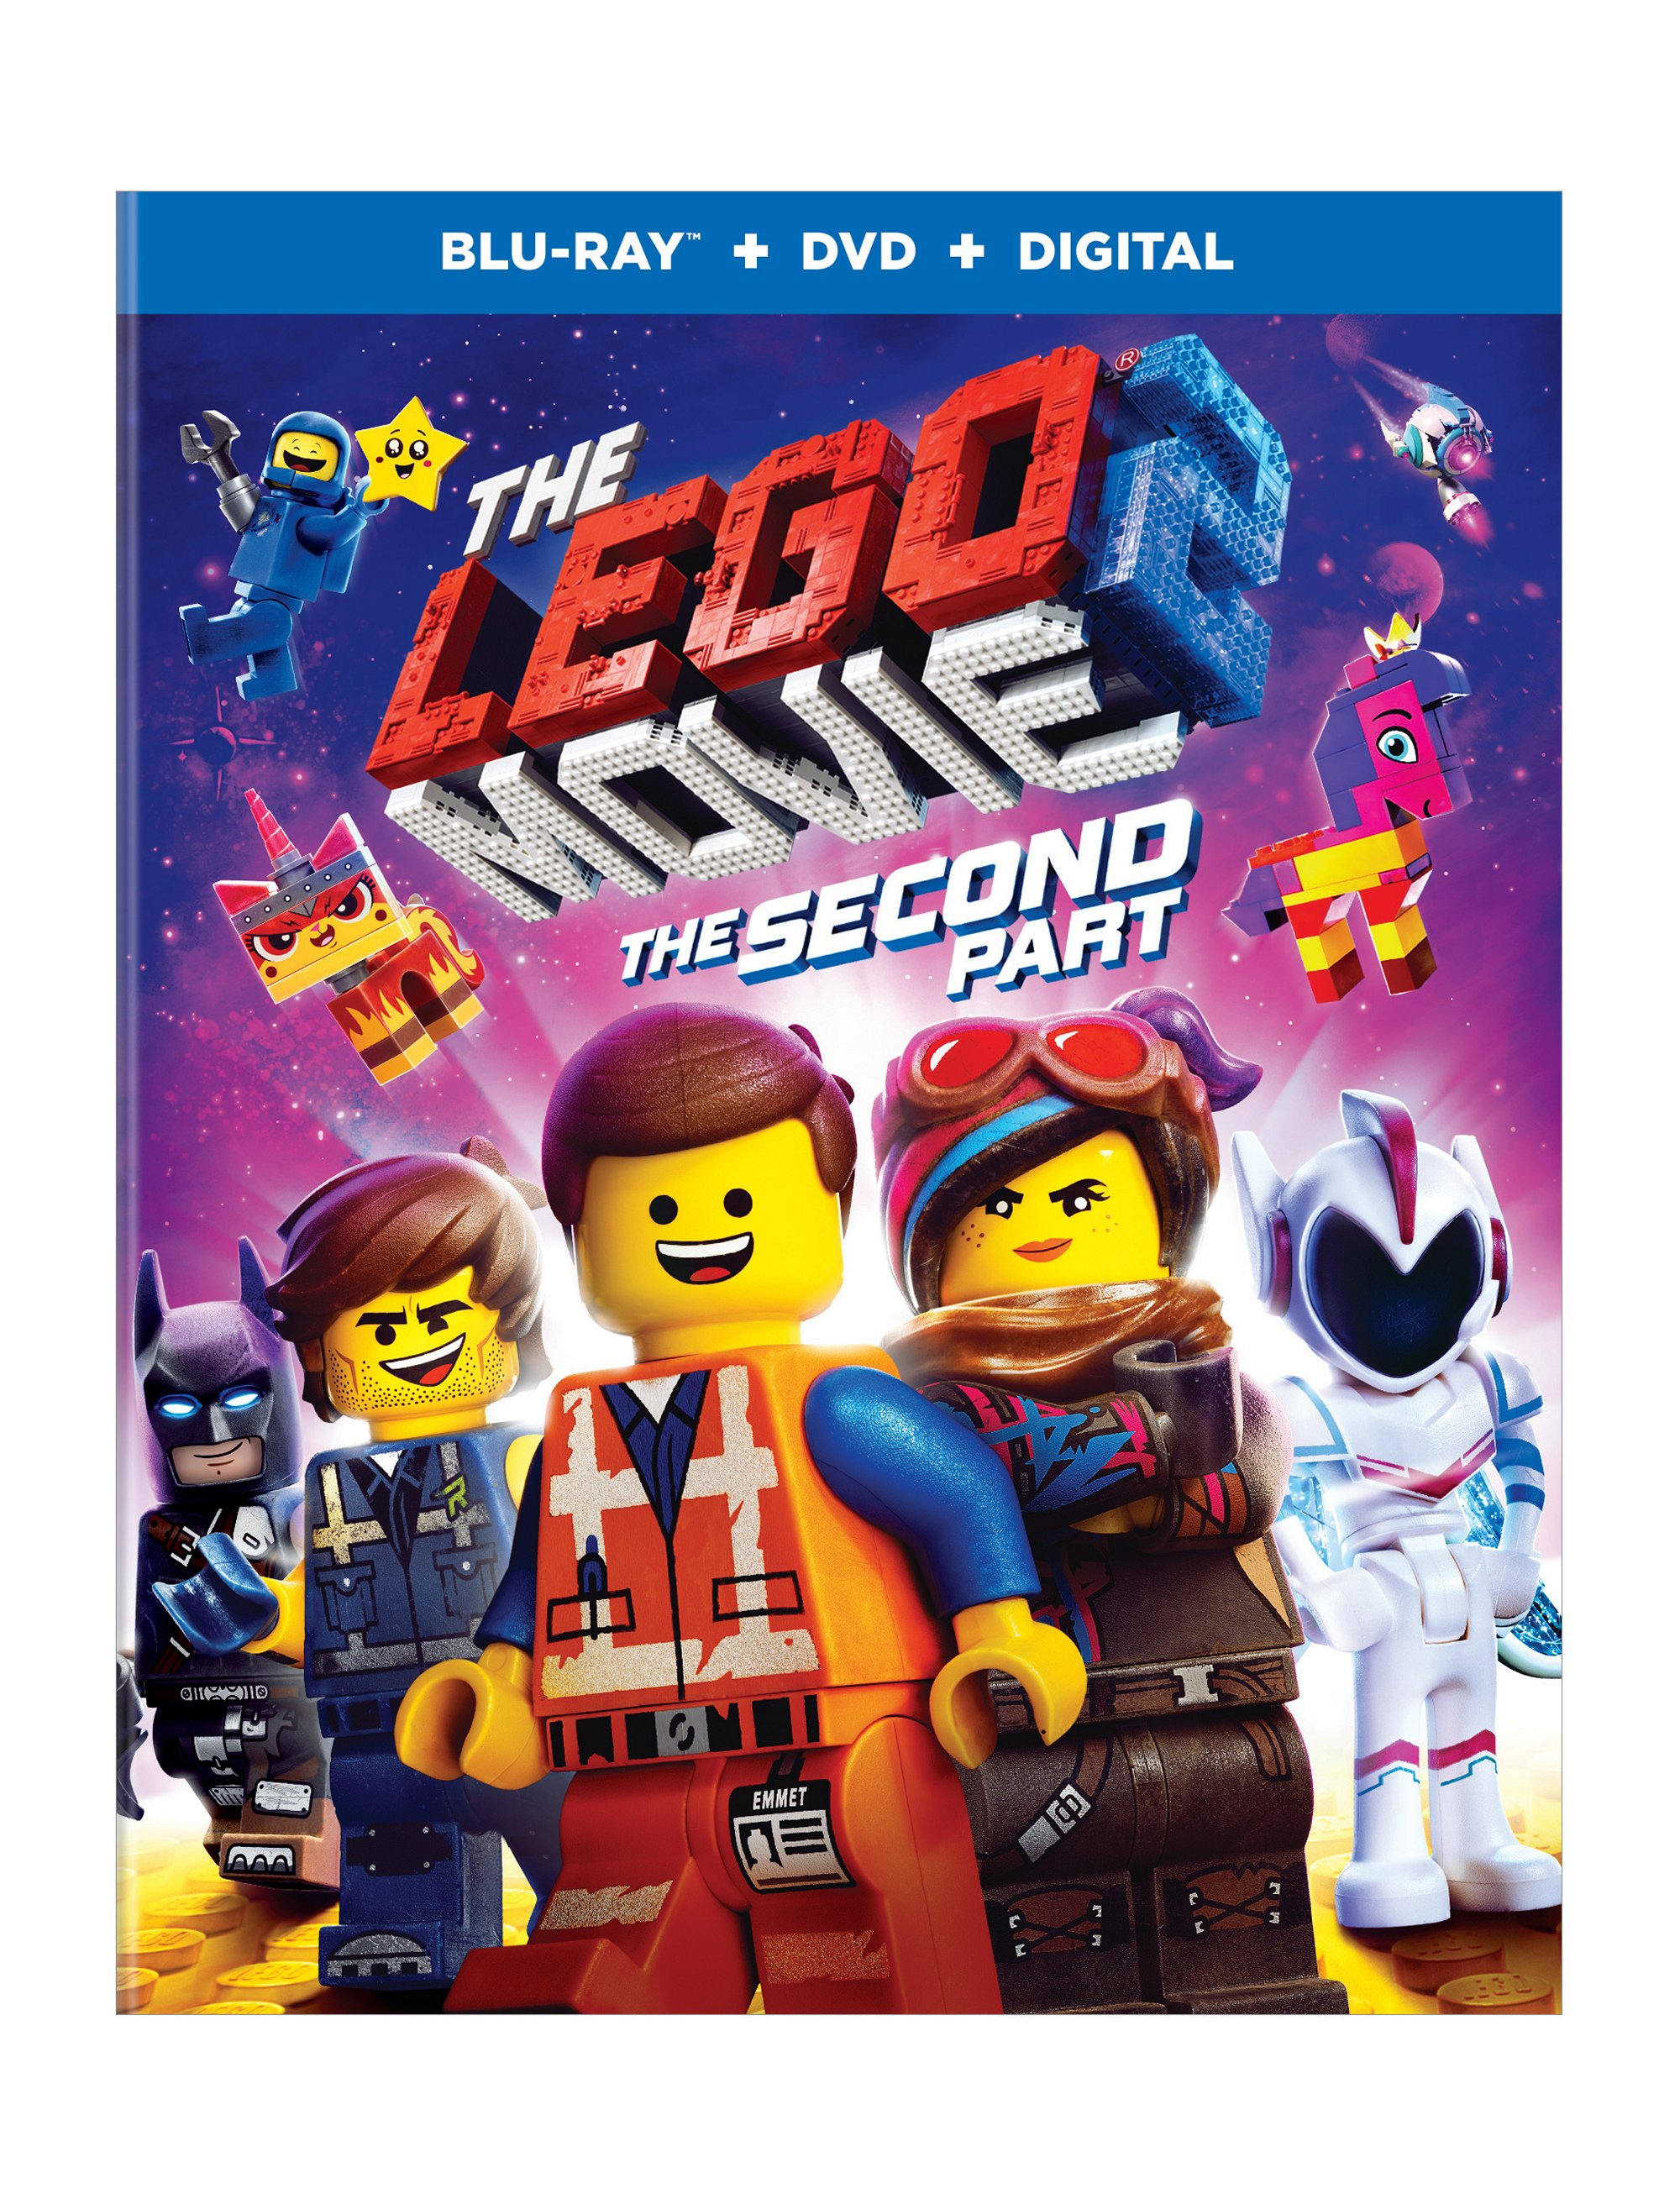 The Lego Movie 2 The Second Part Blu Ray 5005885 The Lego Movie 2 Buy Online At The Official Lego Shop Us